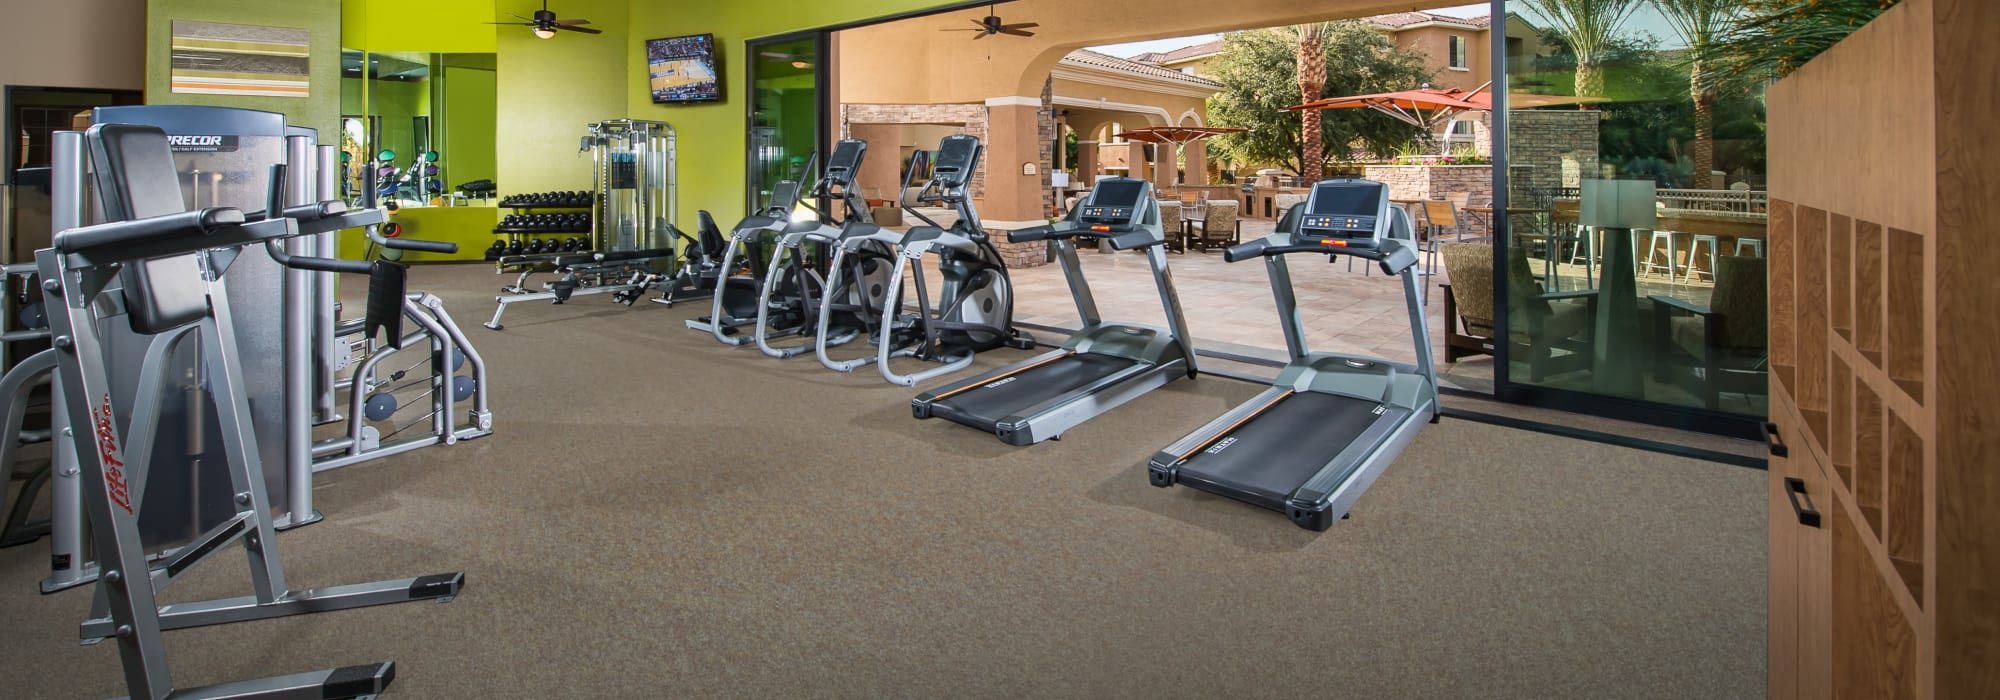 Fitness center at Stone Oaks in Chandler, Arizona